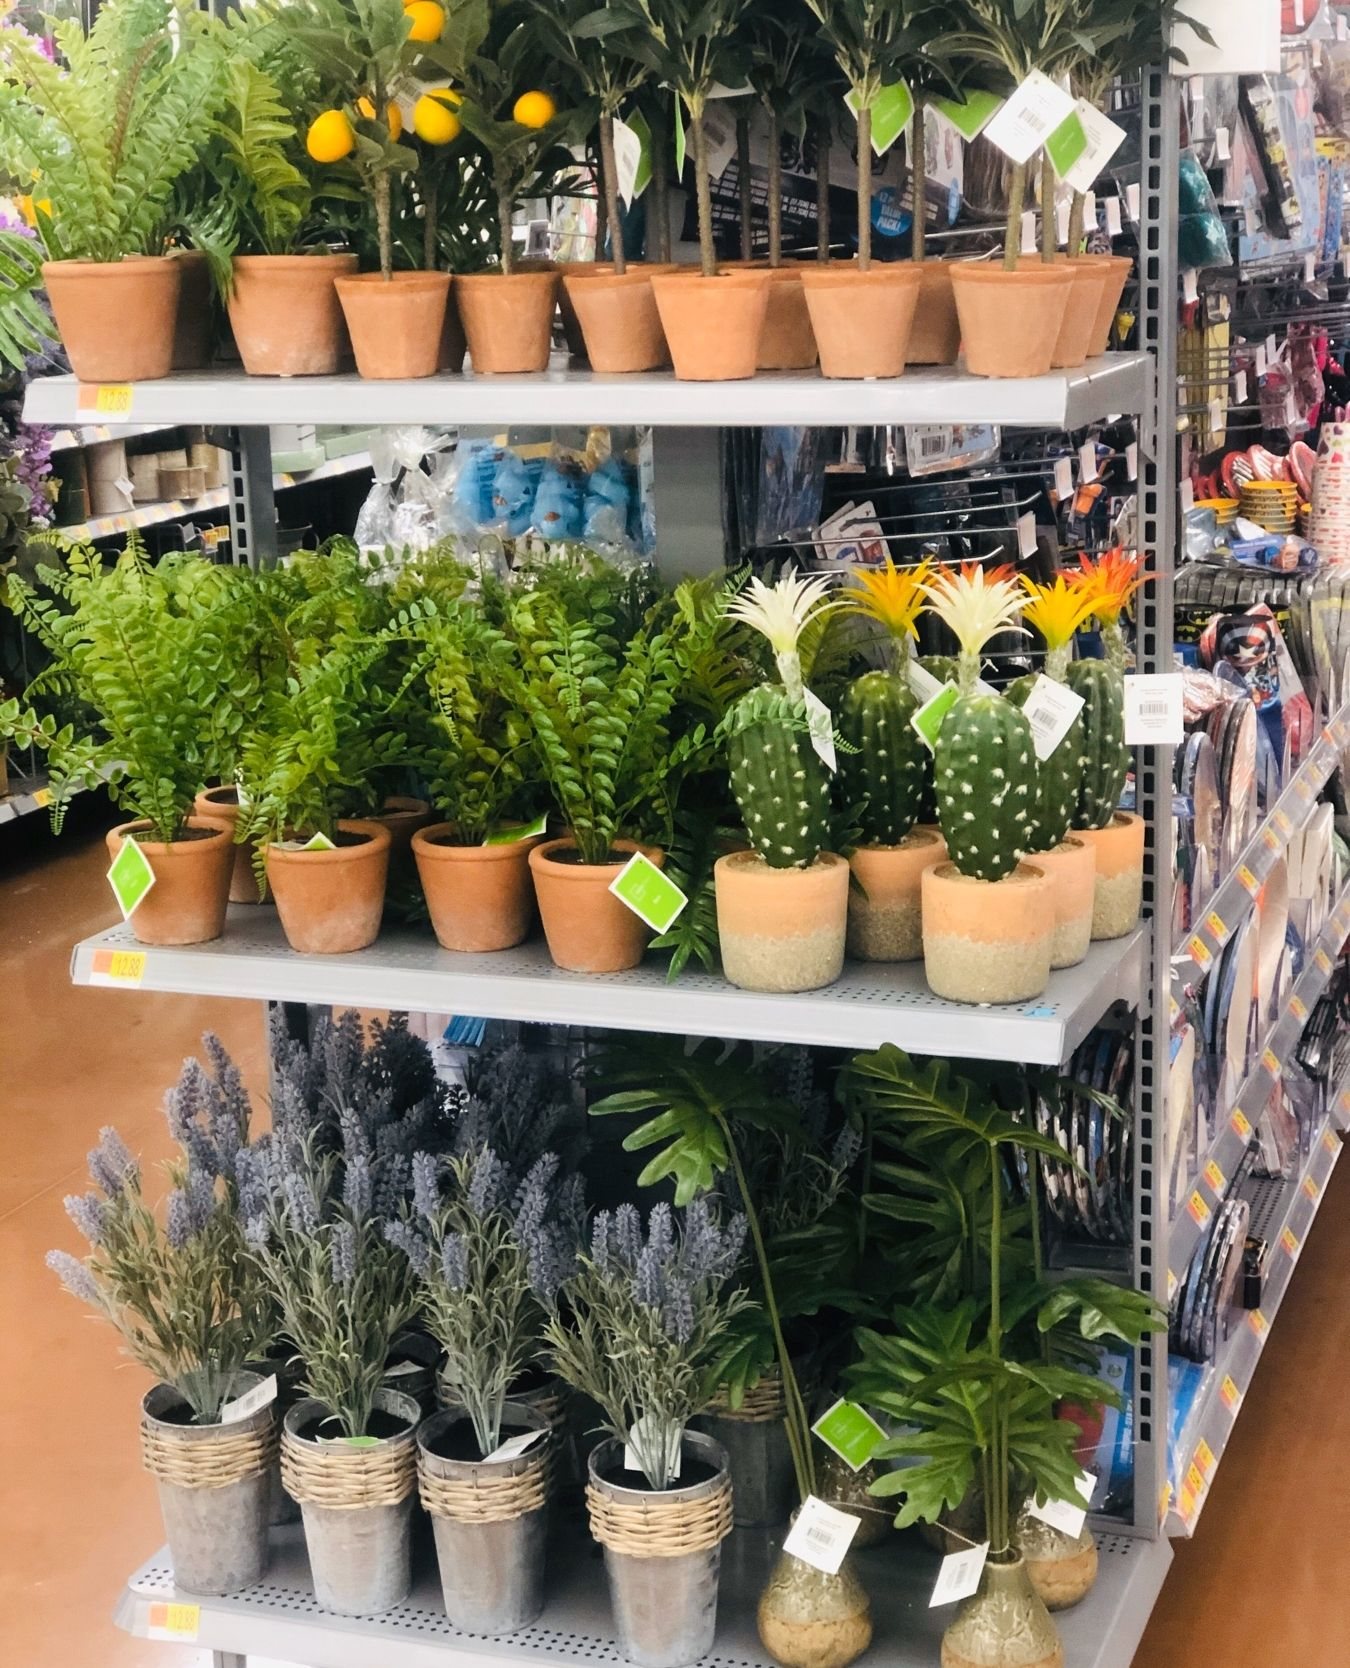 These cute faux plants from @walmart are a great way to spruce up any space in your home for Spring! Shop these plants at your local Walmart!  . Follow us @nowinthesouth  . #walmart #walmartfinds #walmarthome #walmartdecor #walmartstyle #walmarts #forthehome #decor #homedecor #homedecorlover #homedecoration #homedecorlovers #homedecorshop #deals #homesweethome #homedesign #homestyle #palnts #plantshelfie #fauxplants #fauxplantsscape #fauxplantsforthewin #fauxplantsdecor